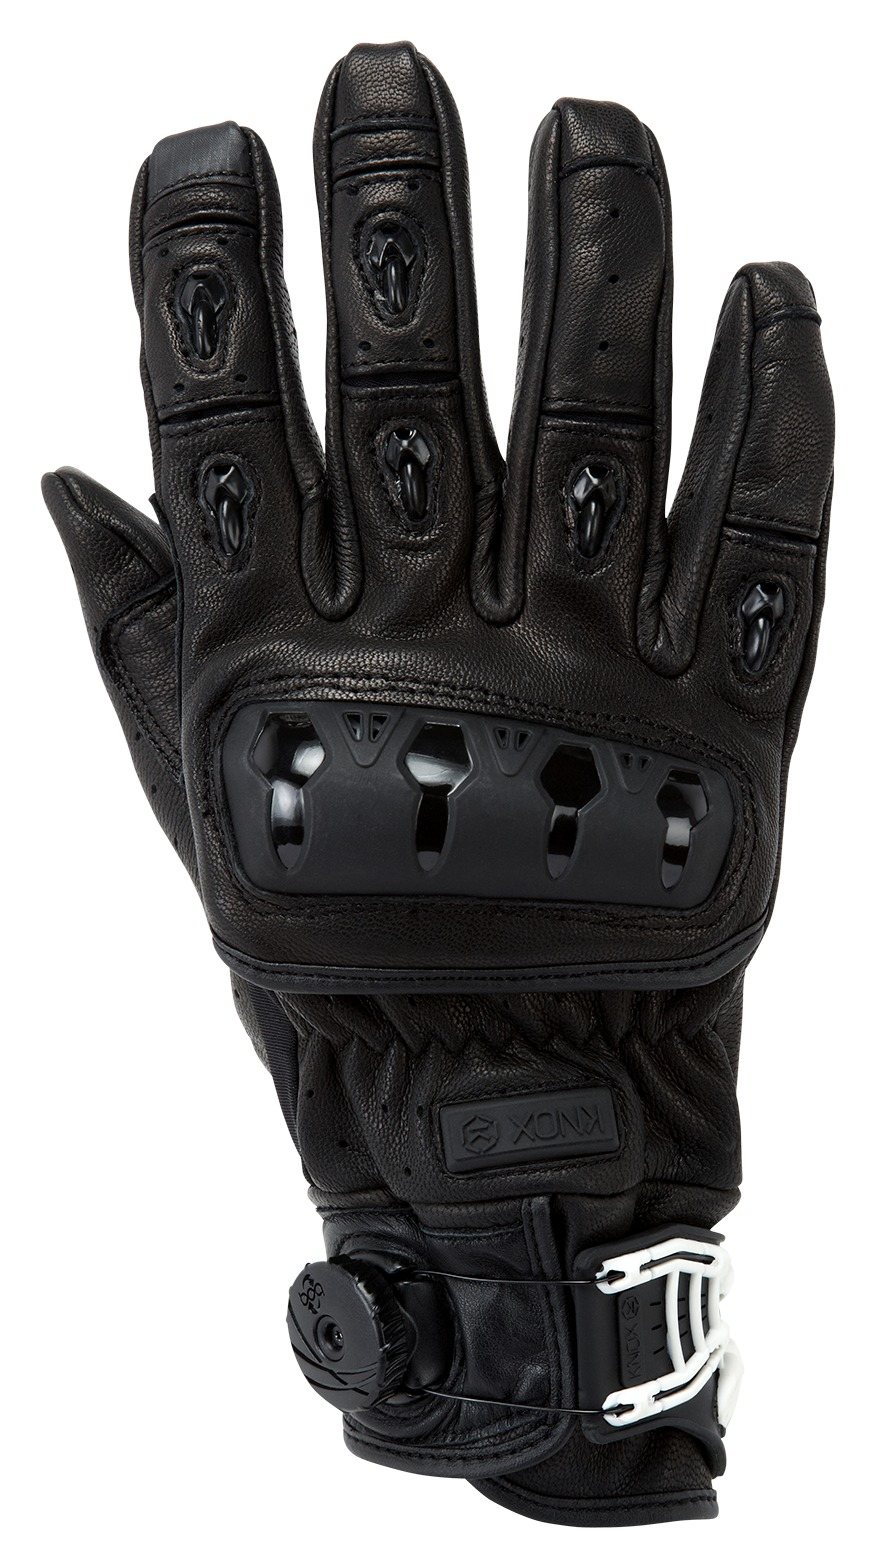 Knox Orsa Leather MK2 Gloves